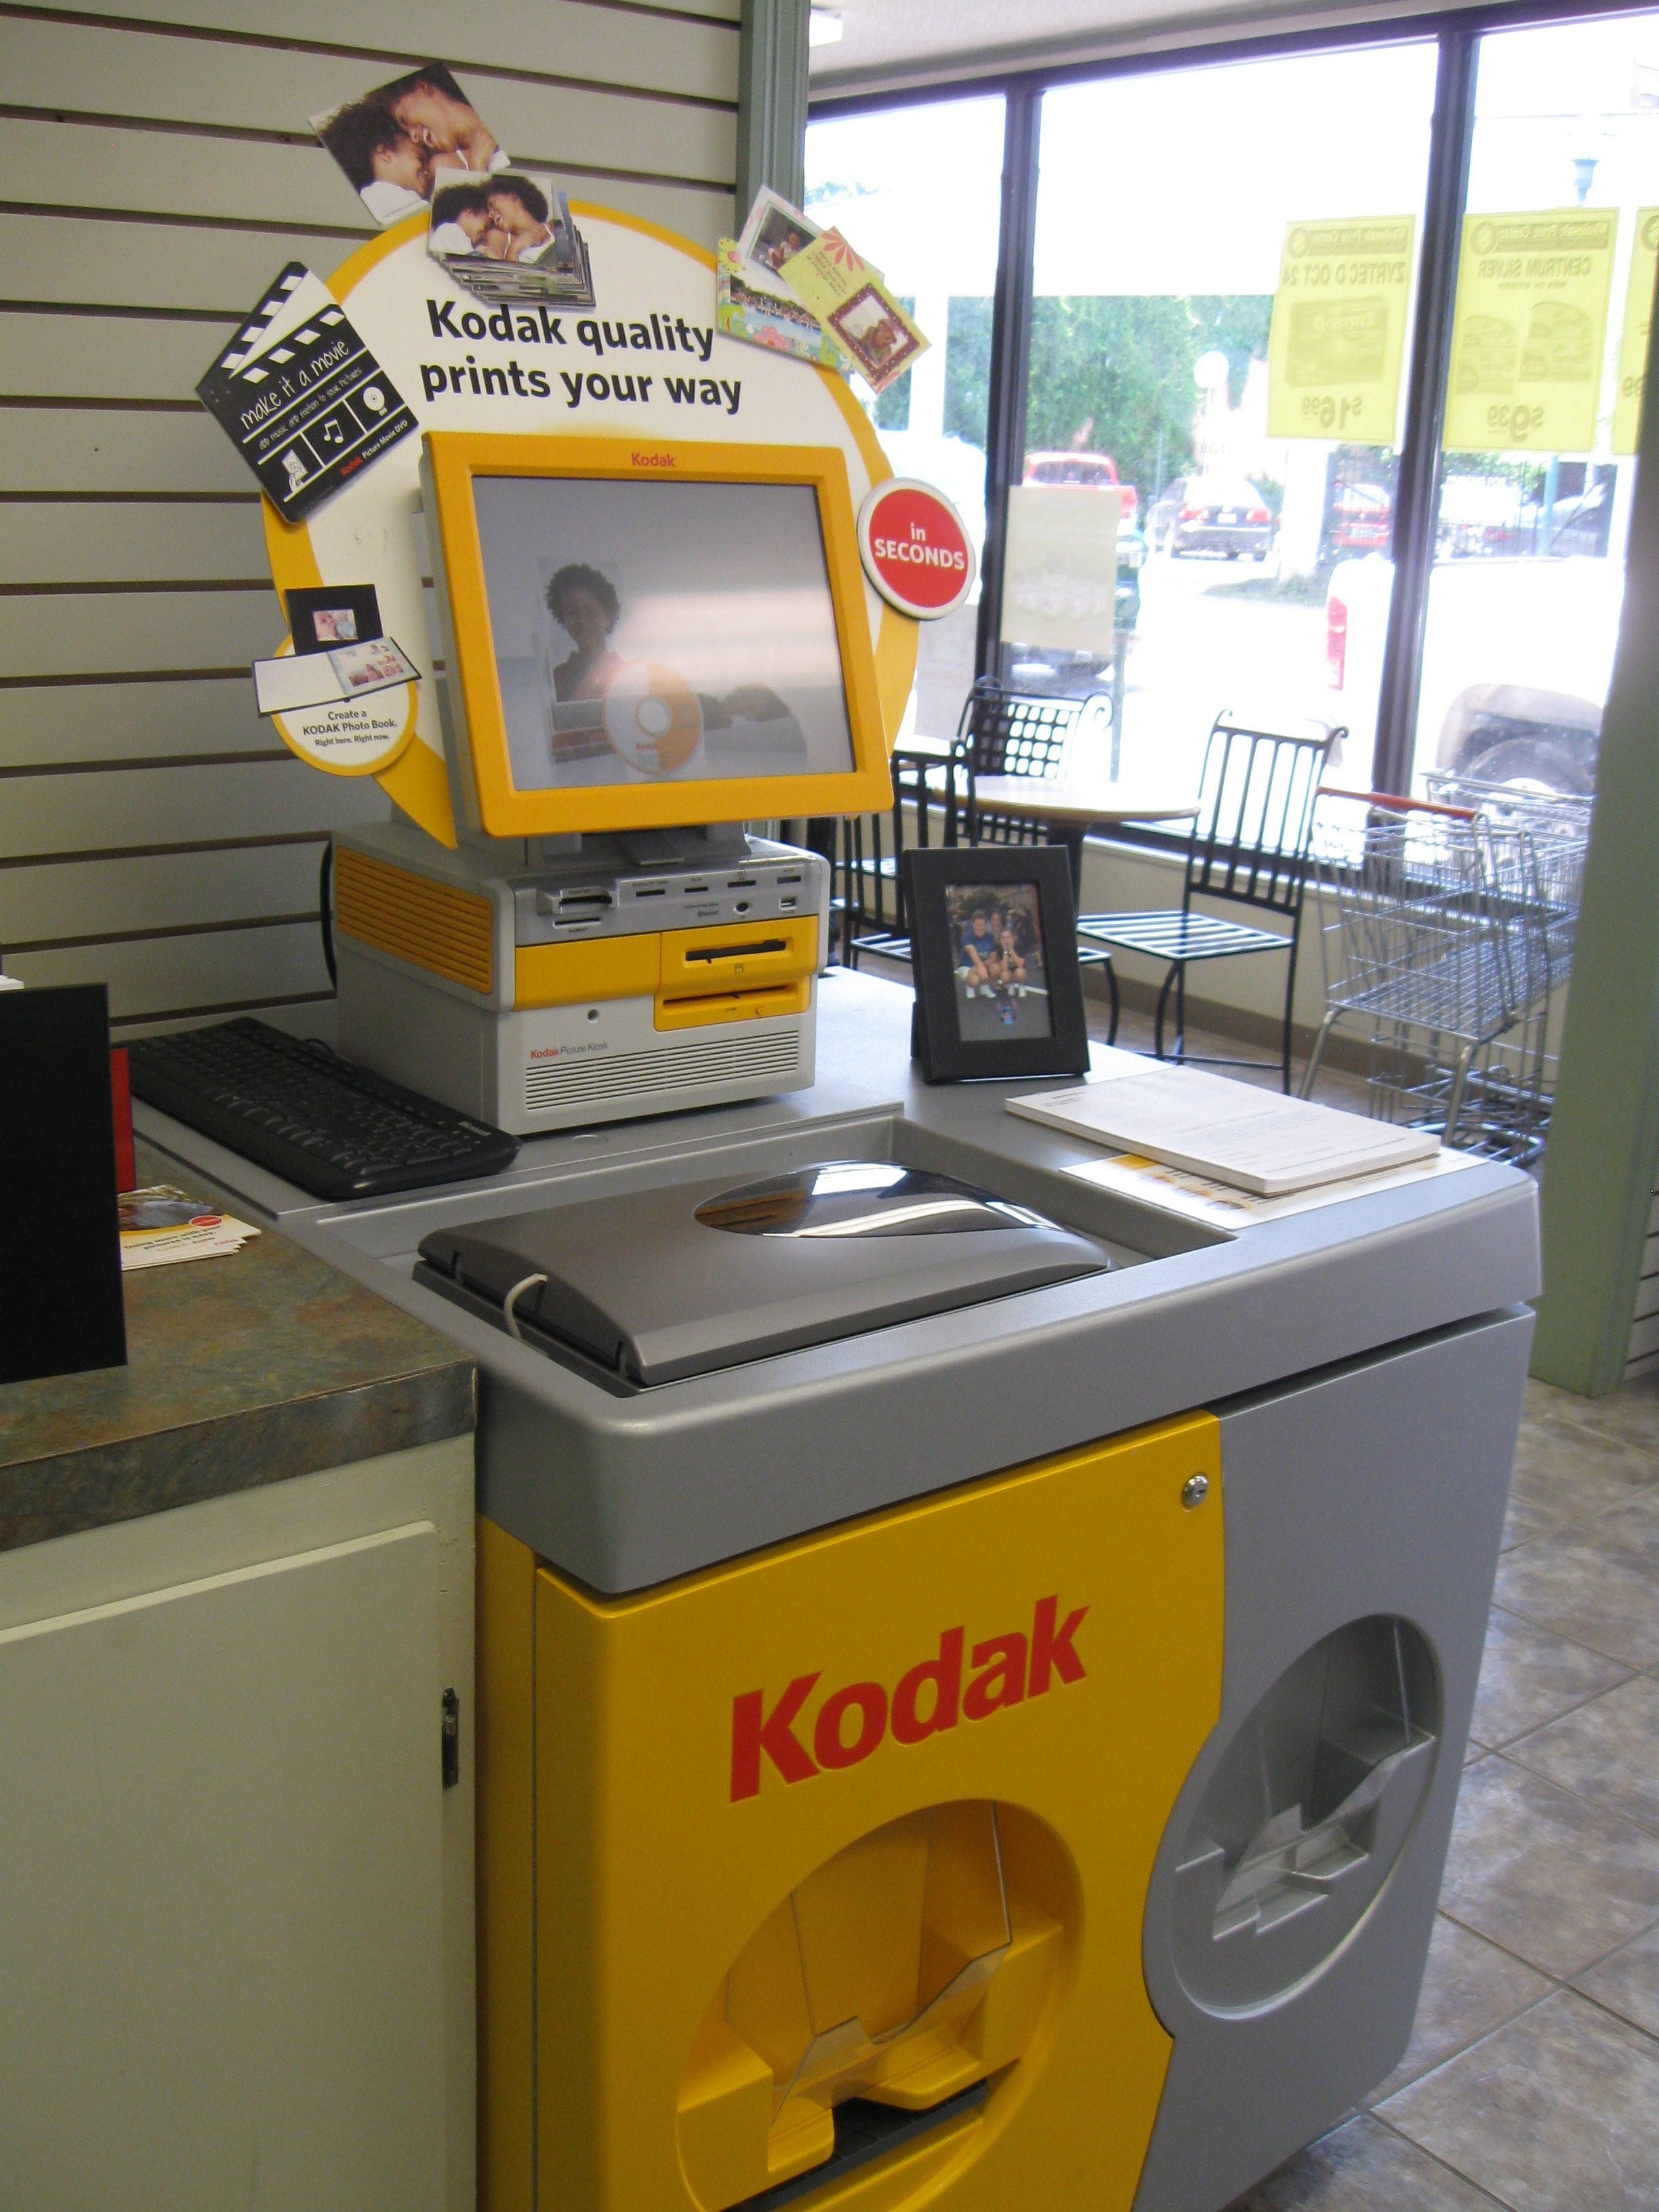 Make printing your pictures easy with the kodak kiosk available at make printing your pictures easy with the kodak kiosk available at teche drugs gifts on jefferson street create a photo book personalized greeting cards kristyandbryce Gallery